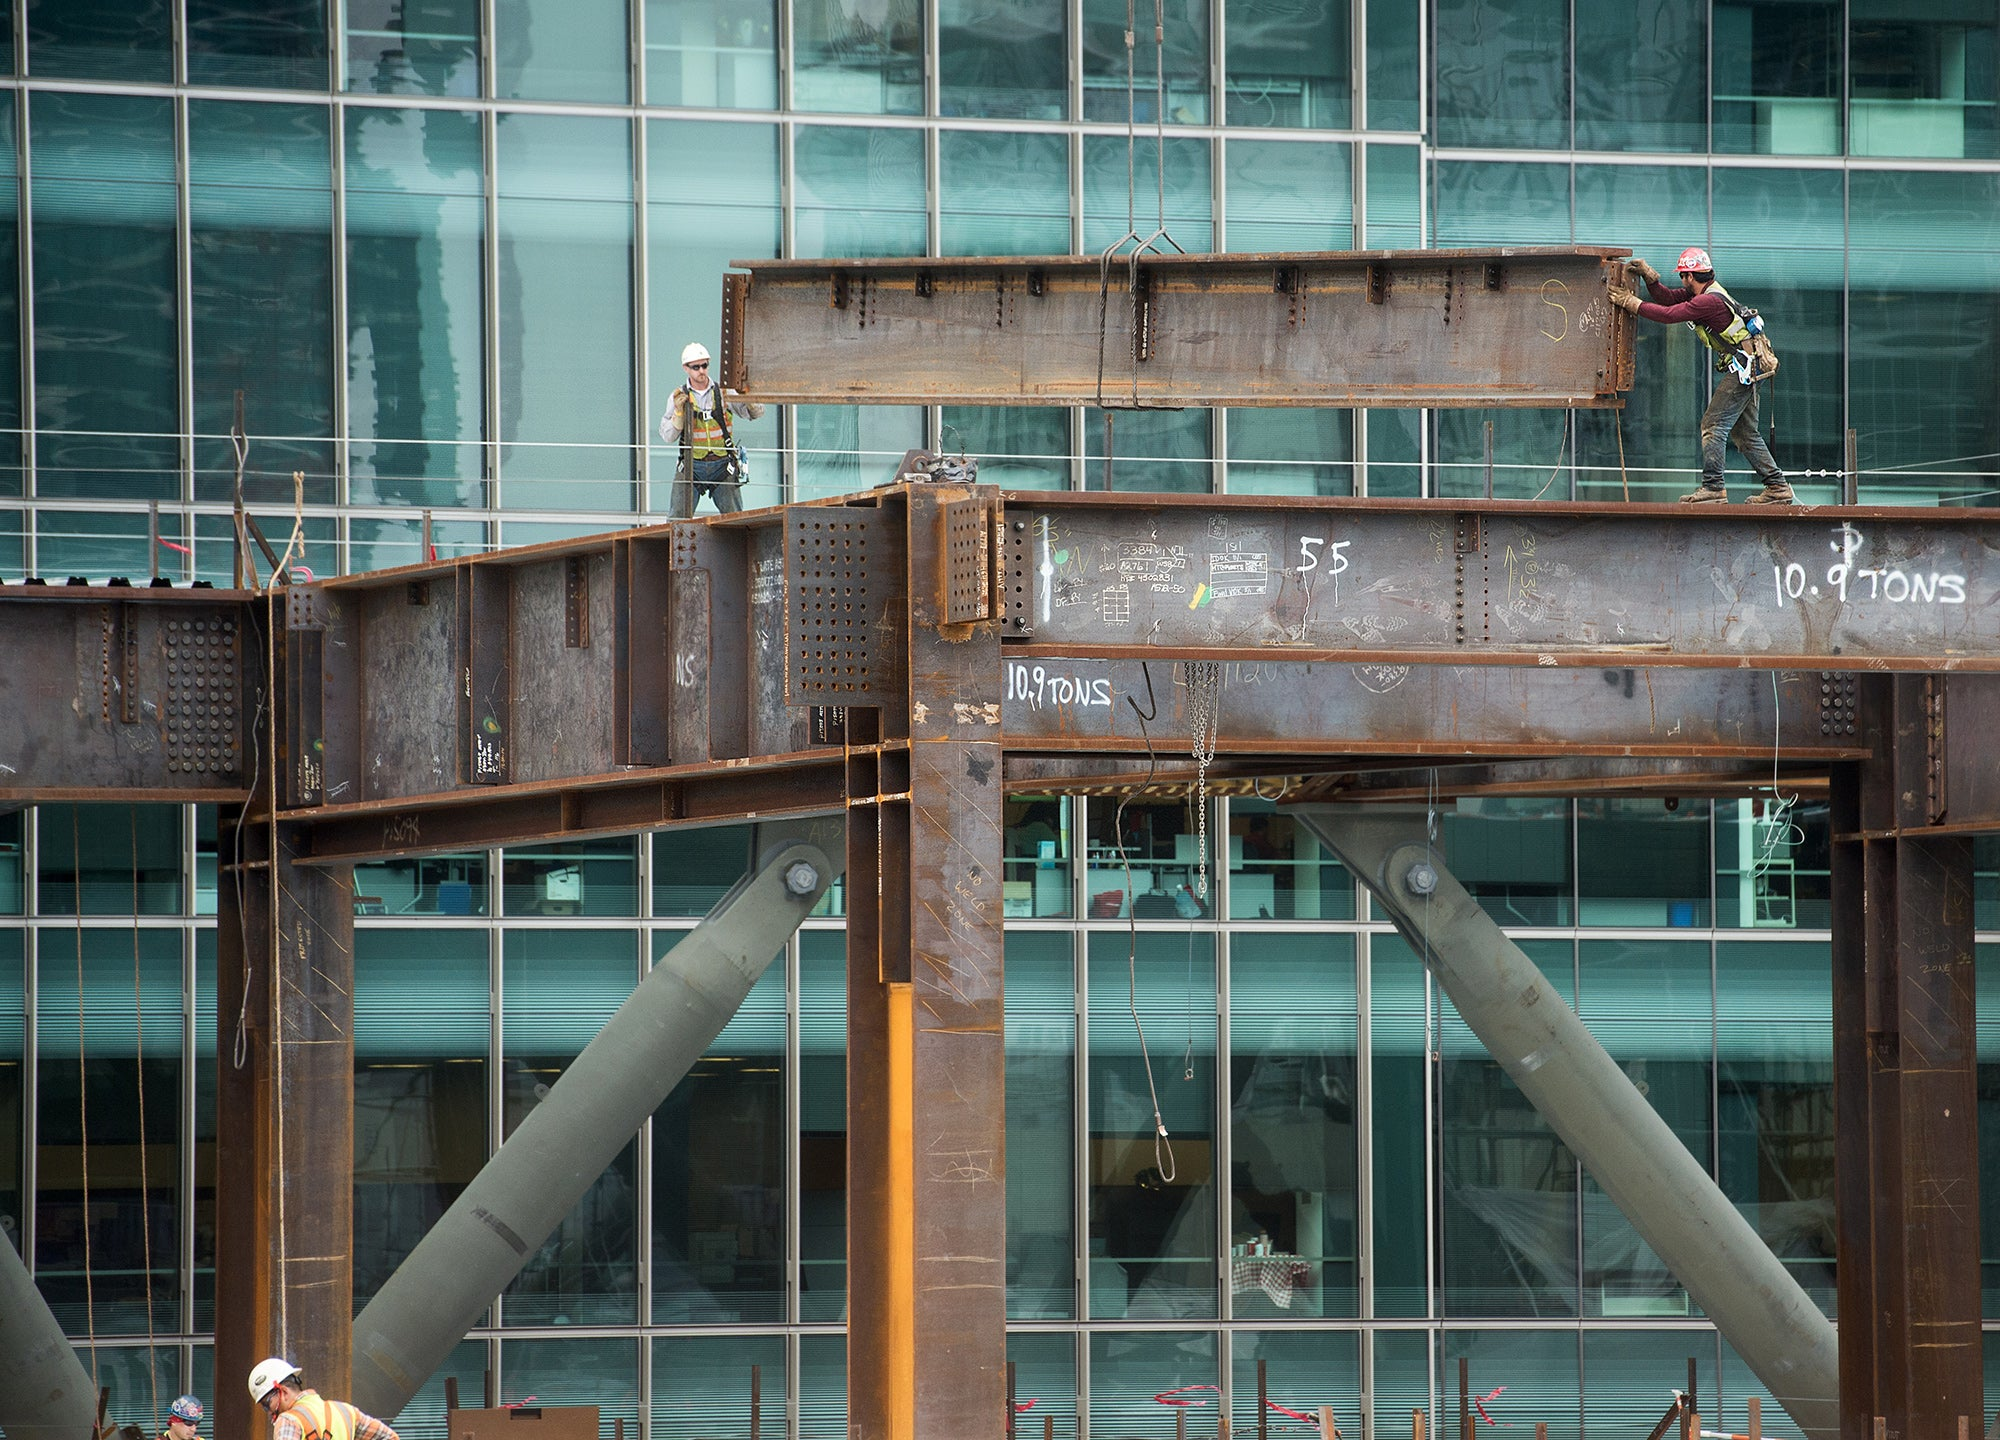 Workers erect the support beams for the Transbay Terminal